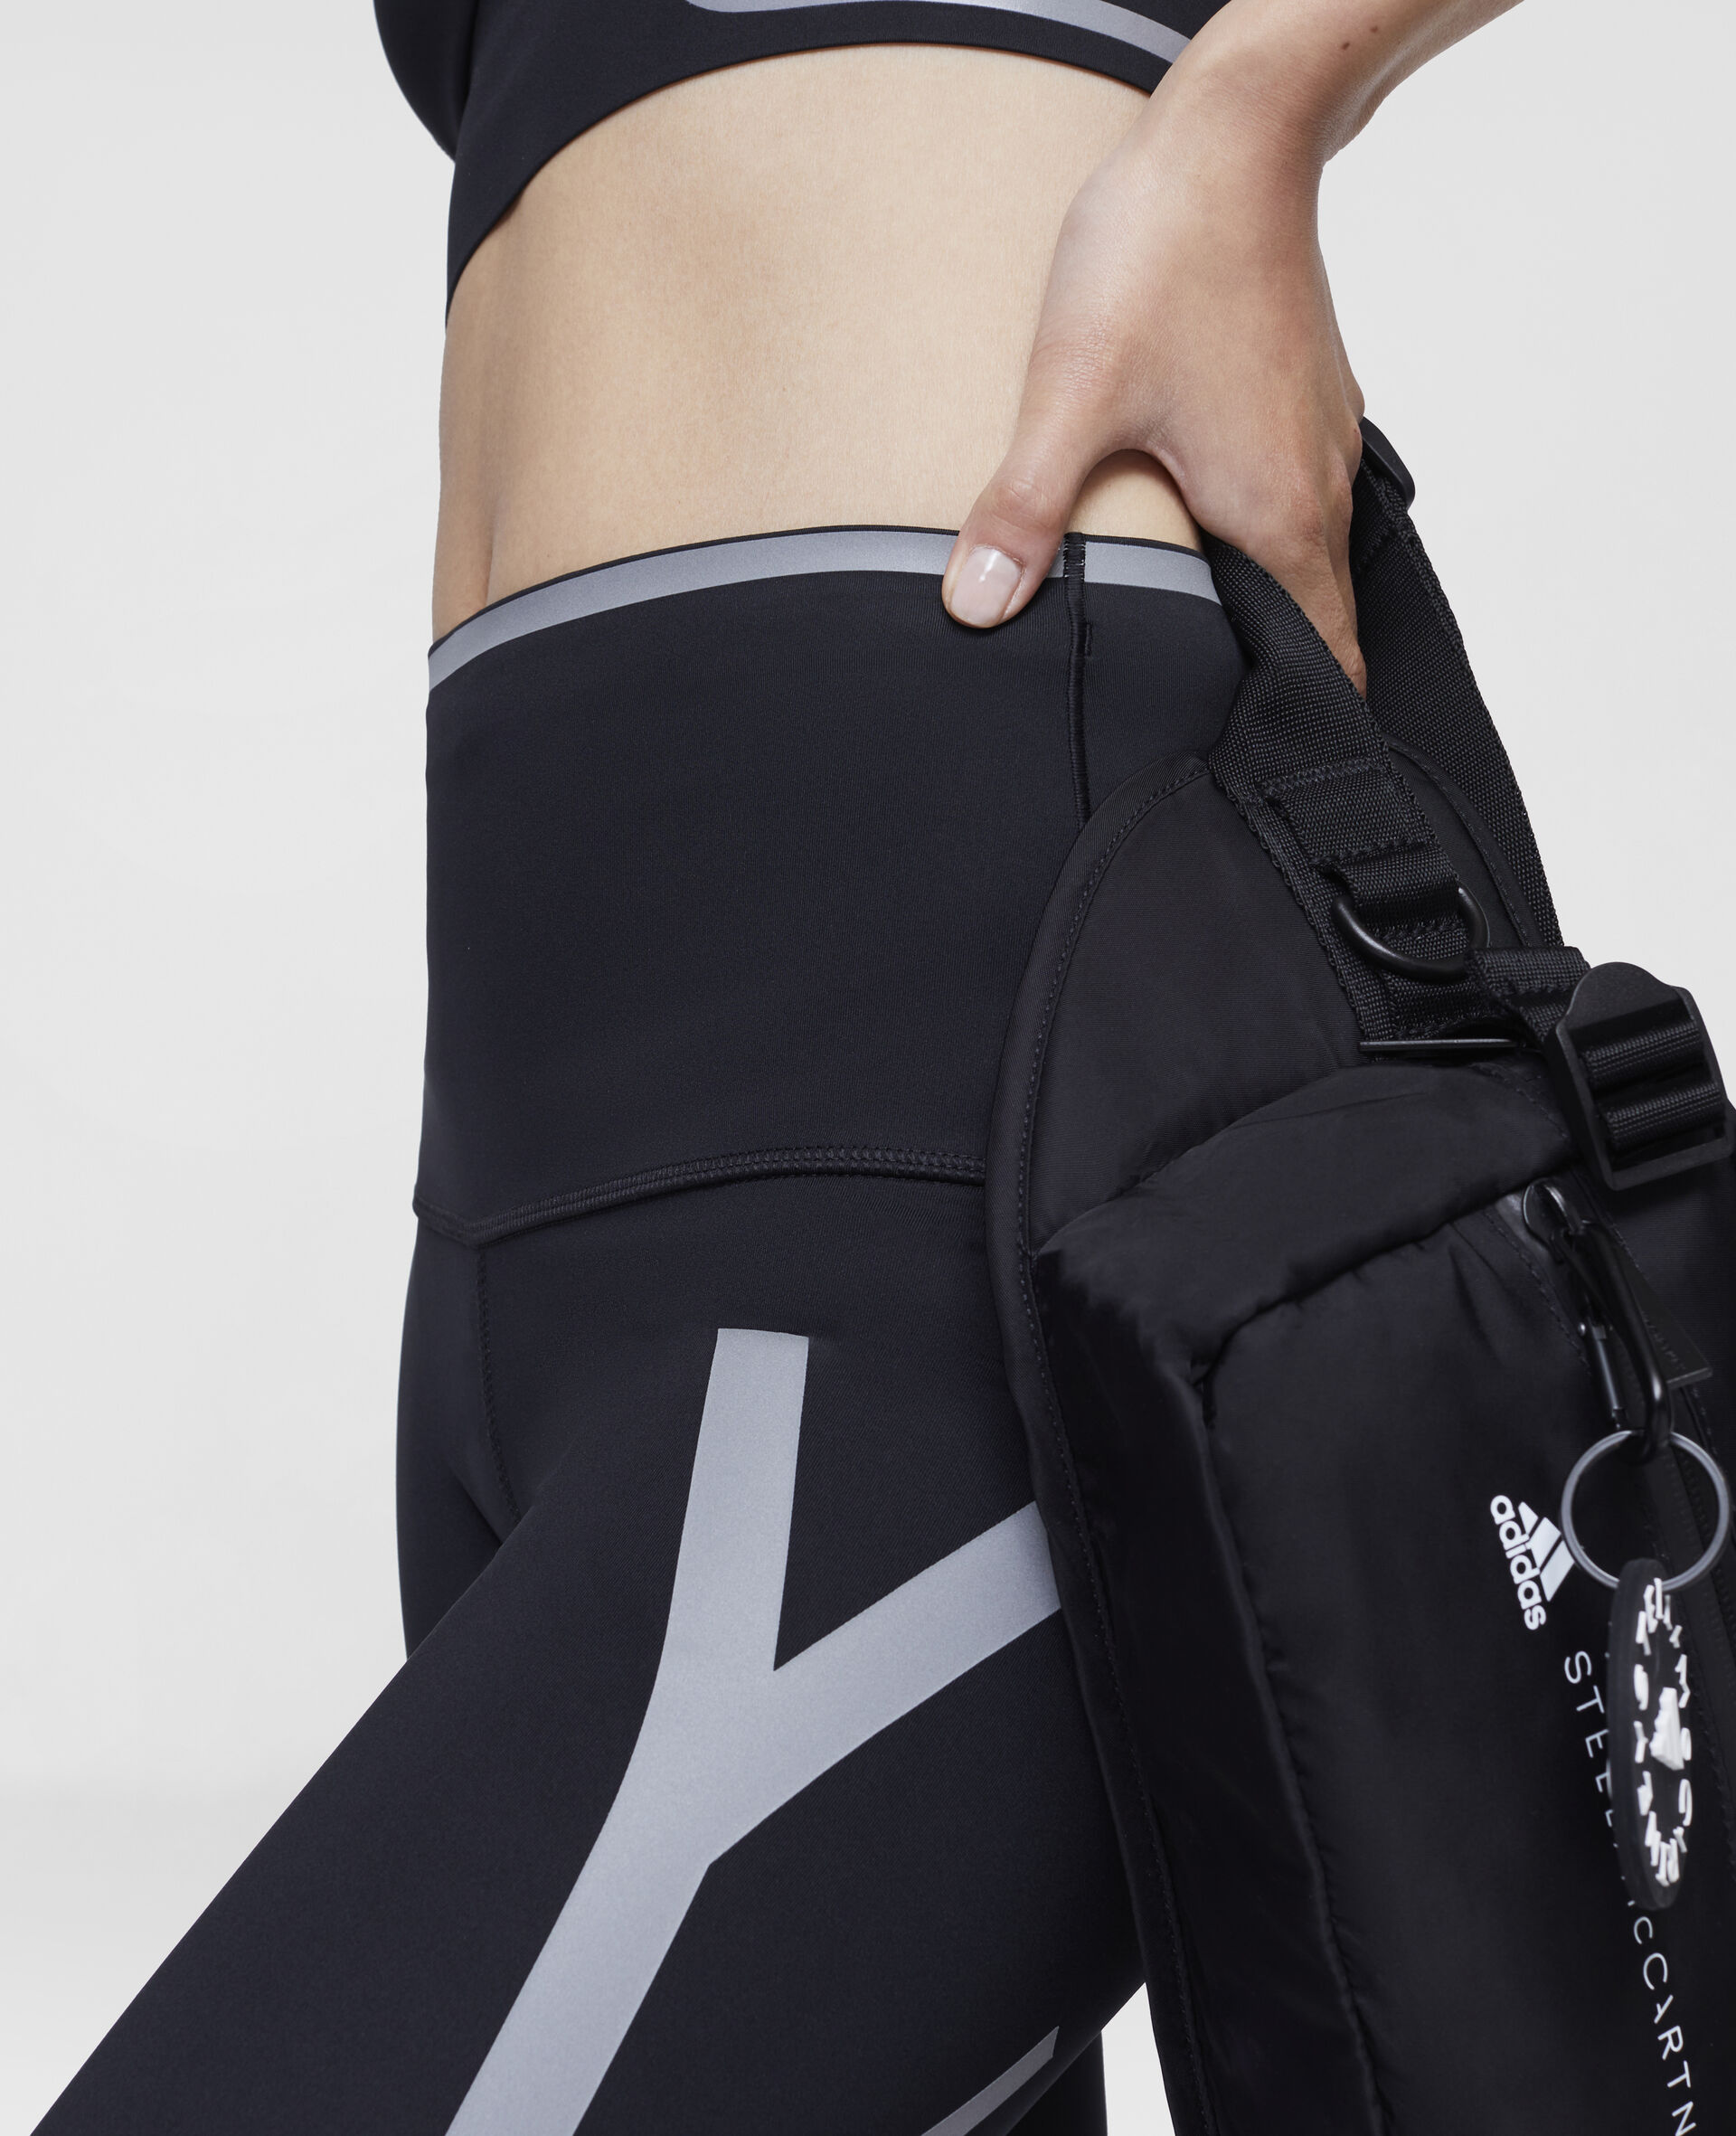 TruePace 3/4 Running Tights-Black-large image number 3